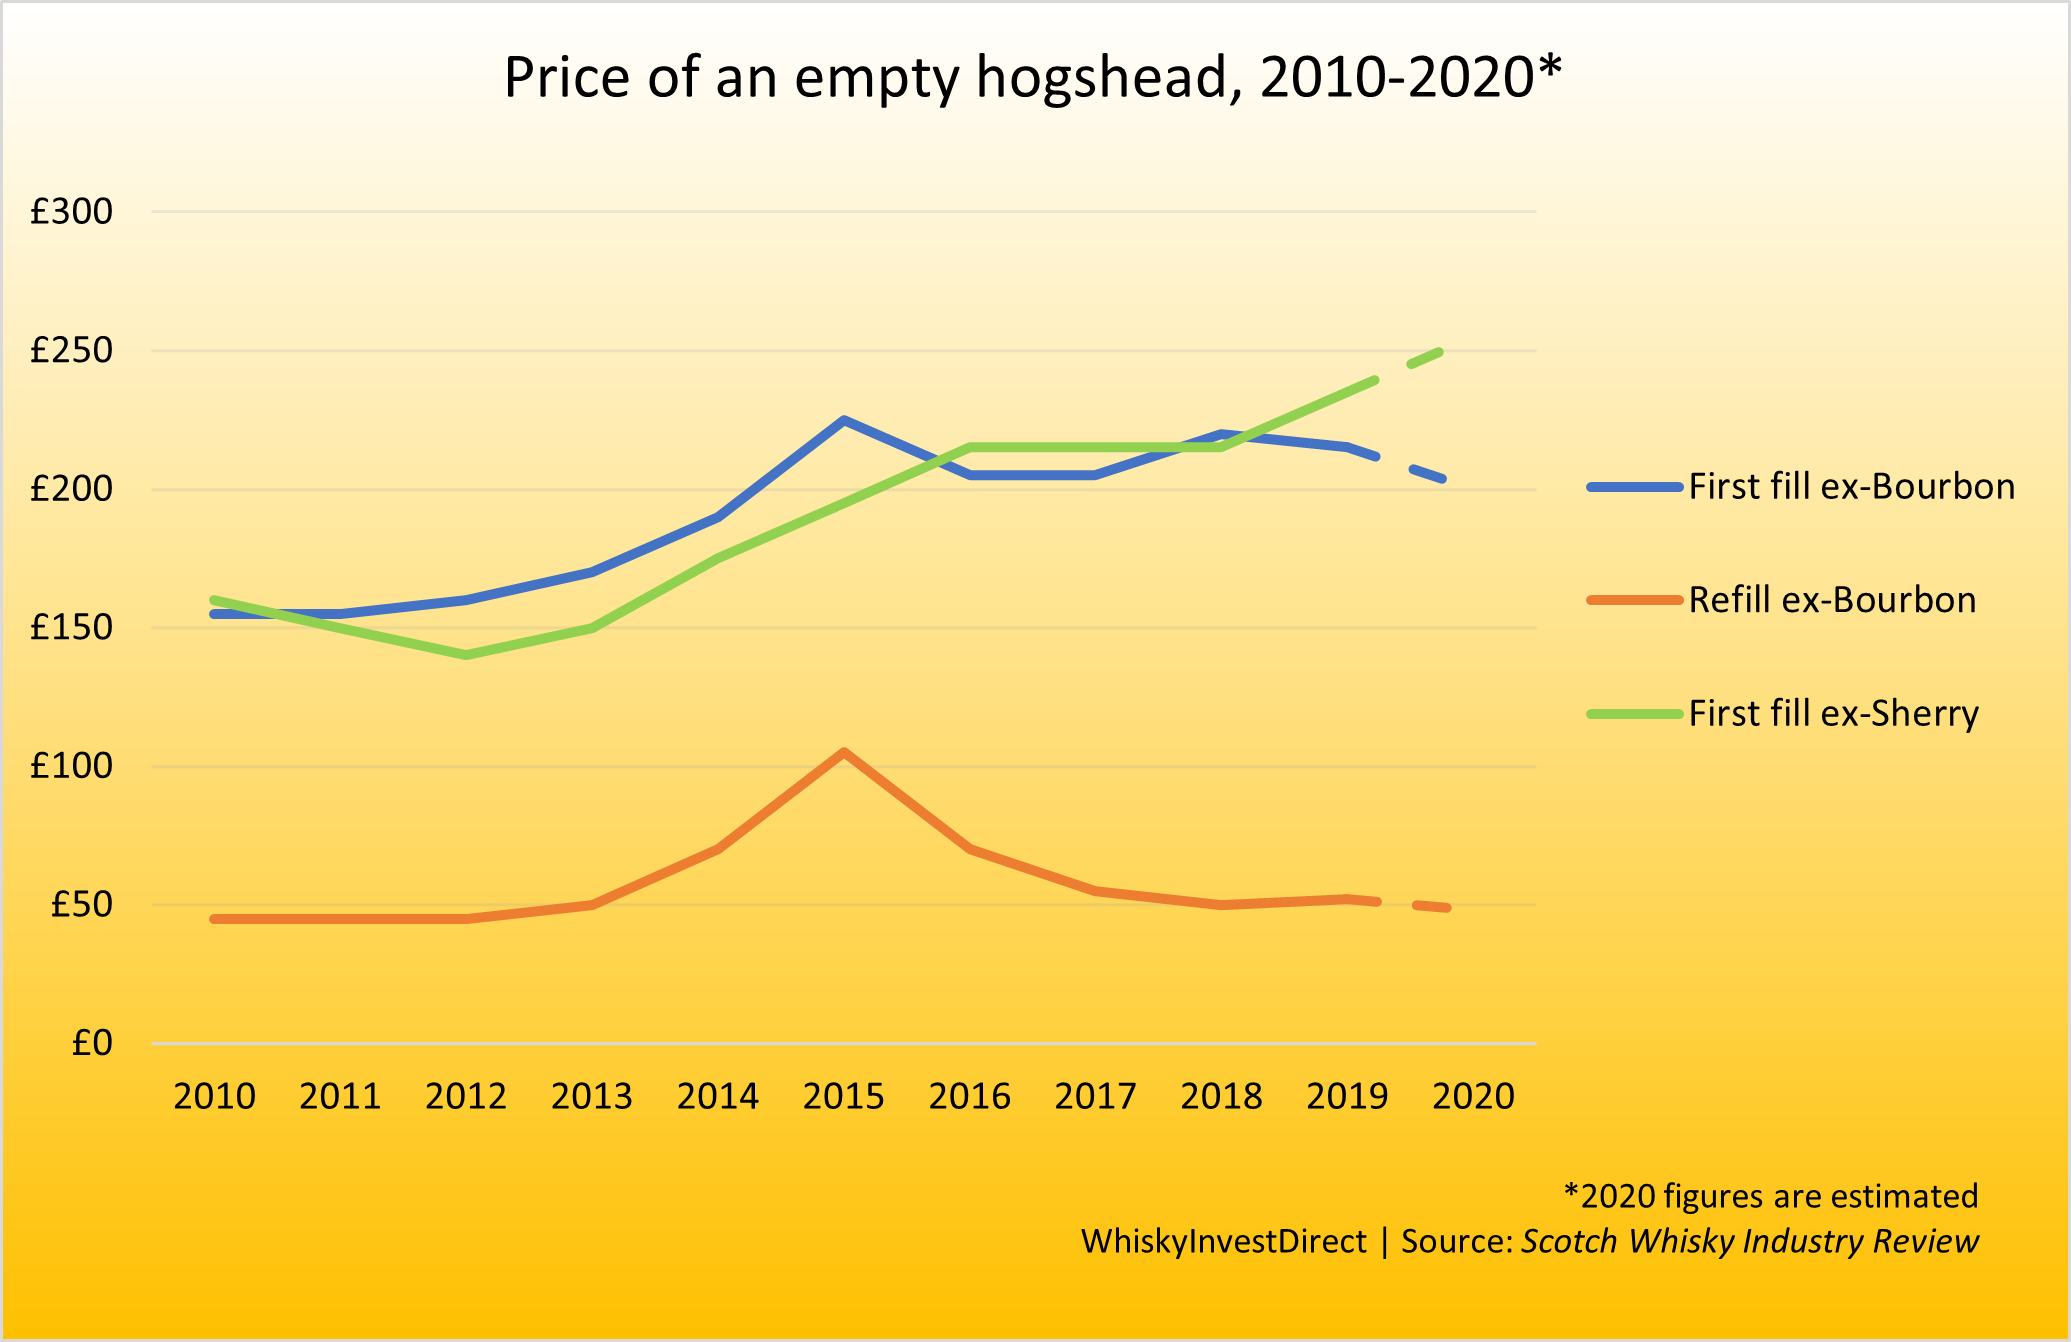 Comparison of the cost of hogshead casks between 2010-2020